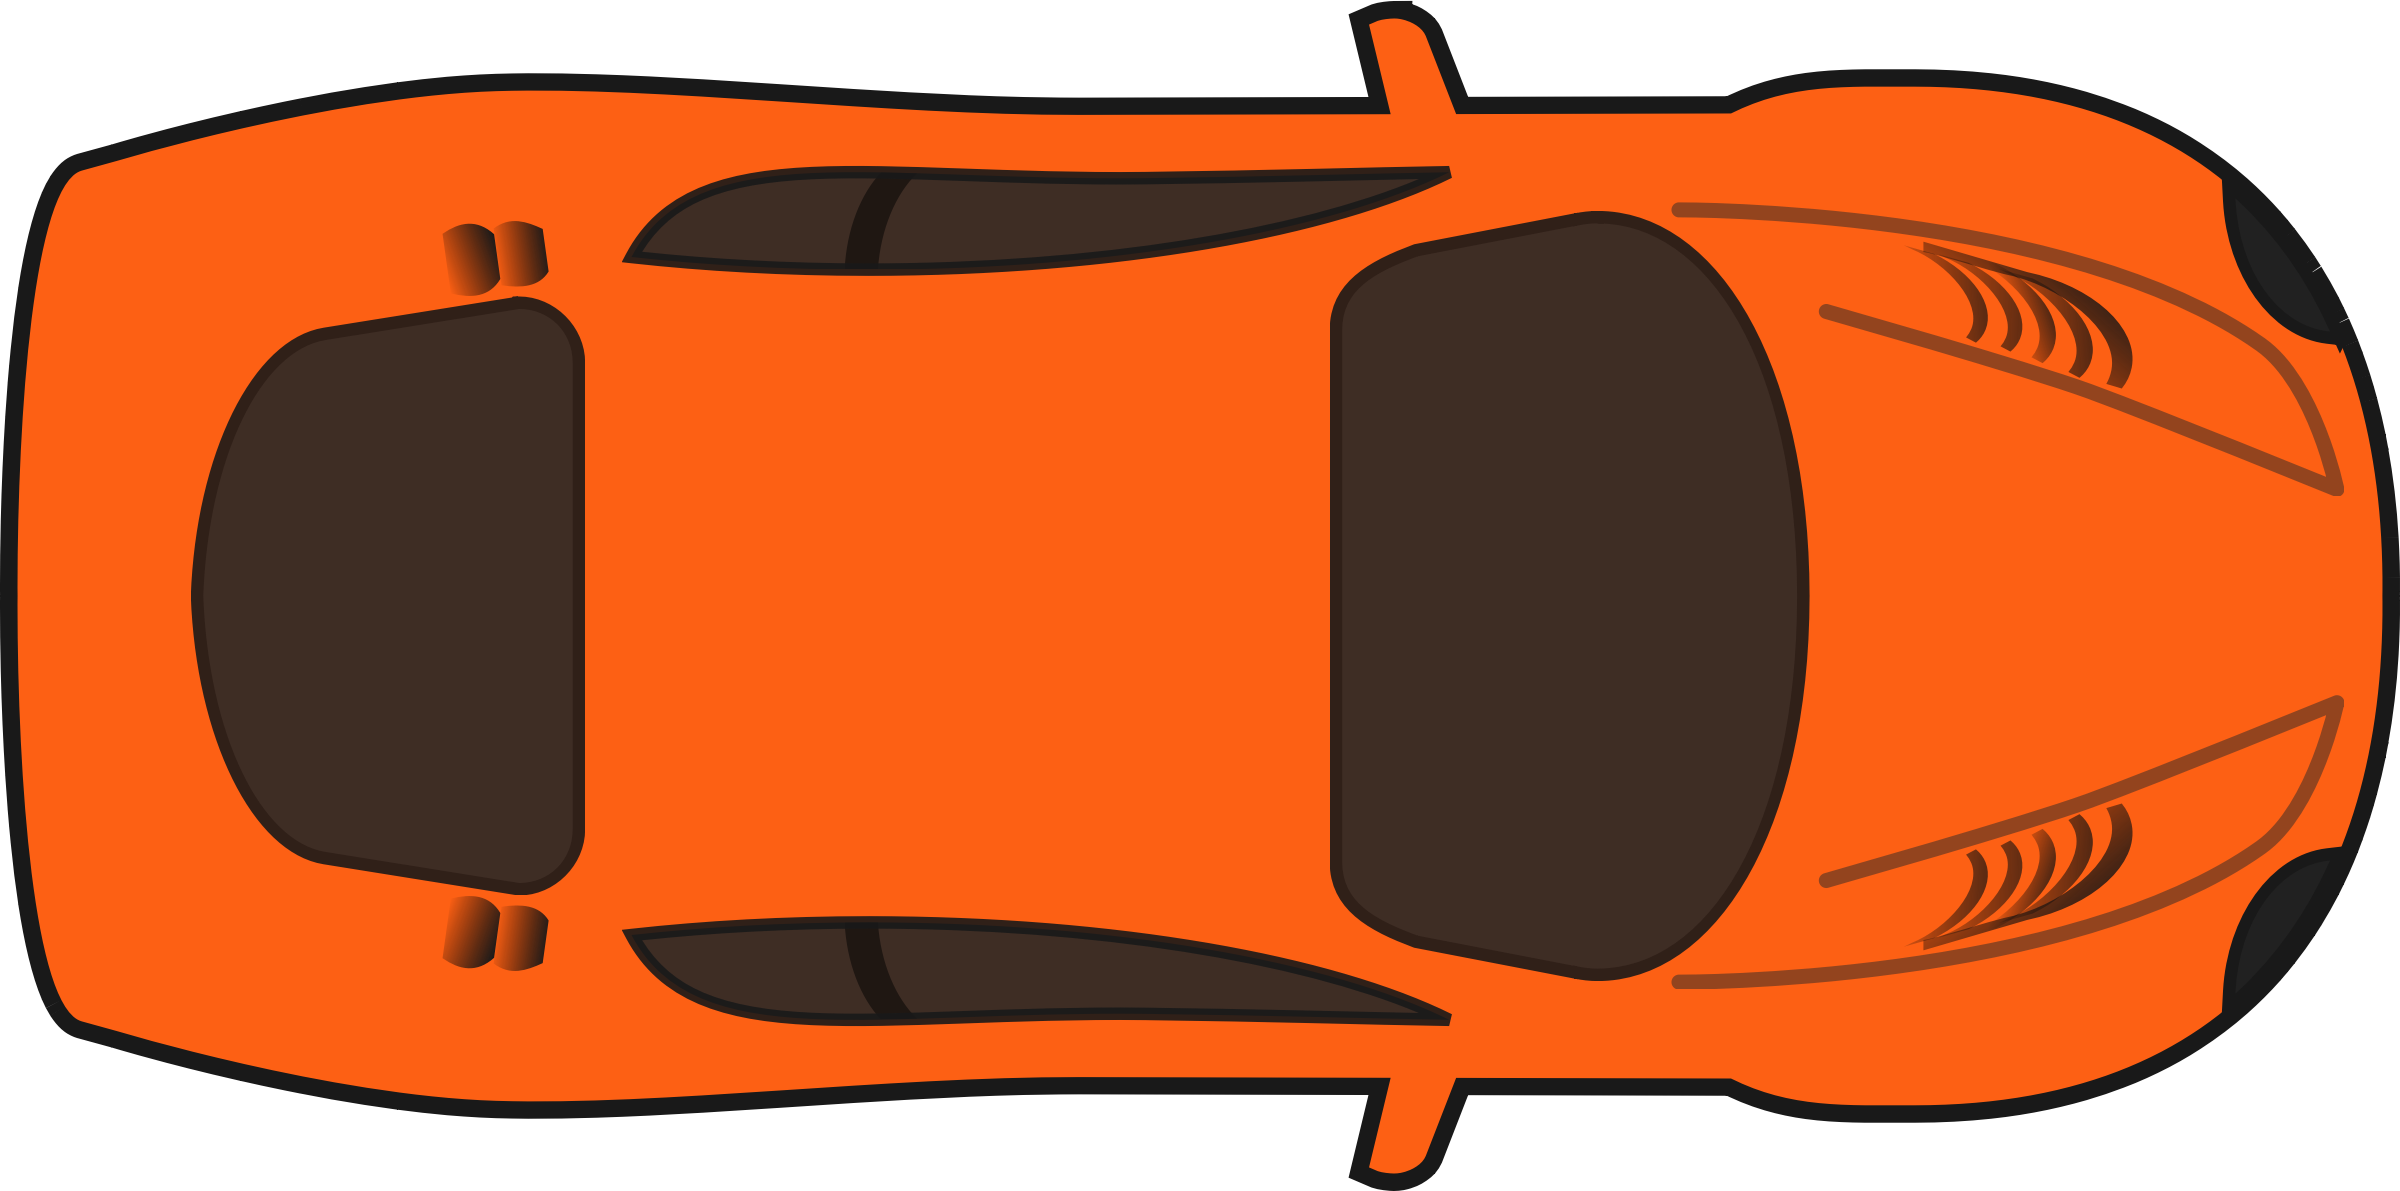 2400x1191 Collection Of Sports Car Clipart Top View High Quality, Free